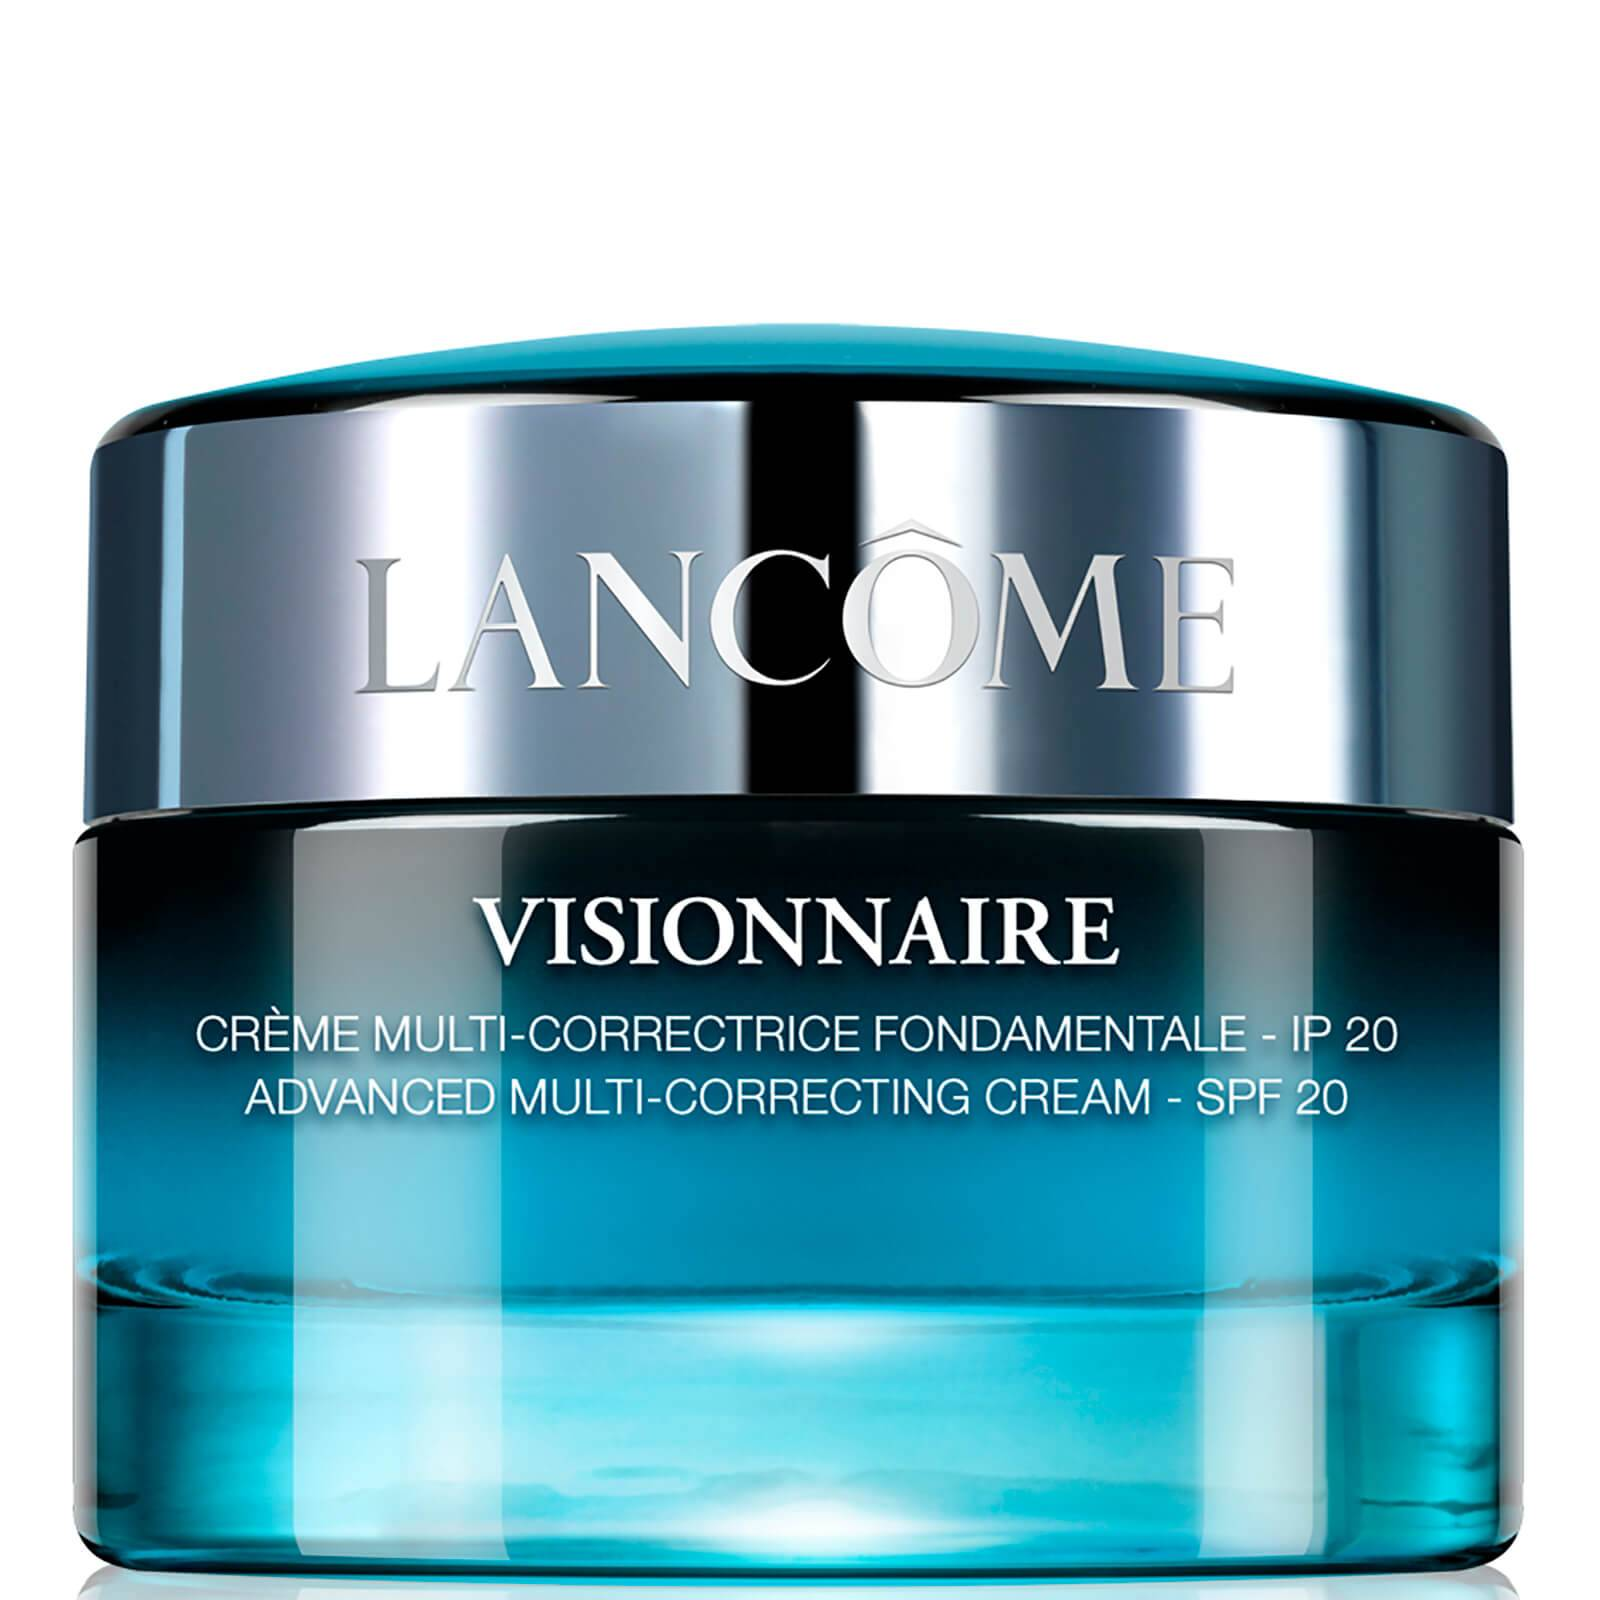 Lancome Visionnaire Advanced crema multi-correttrice SPF 20 50 ml